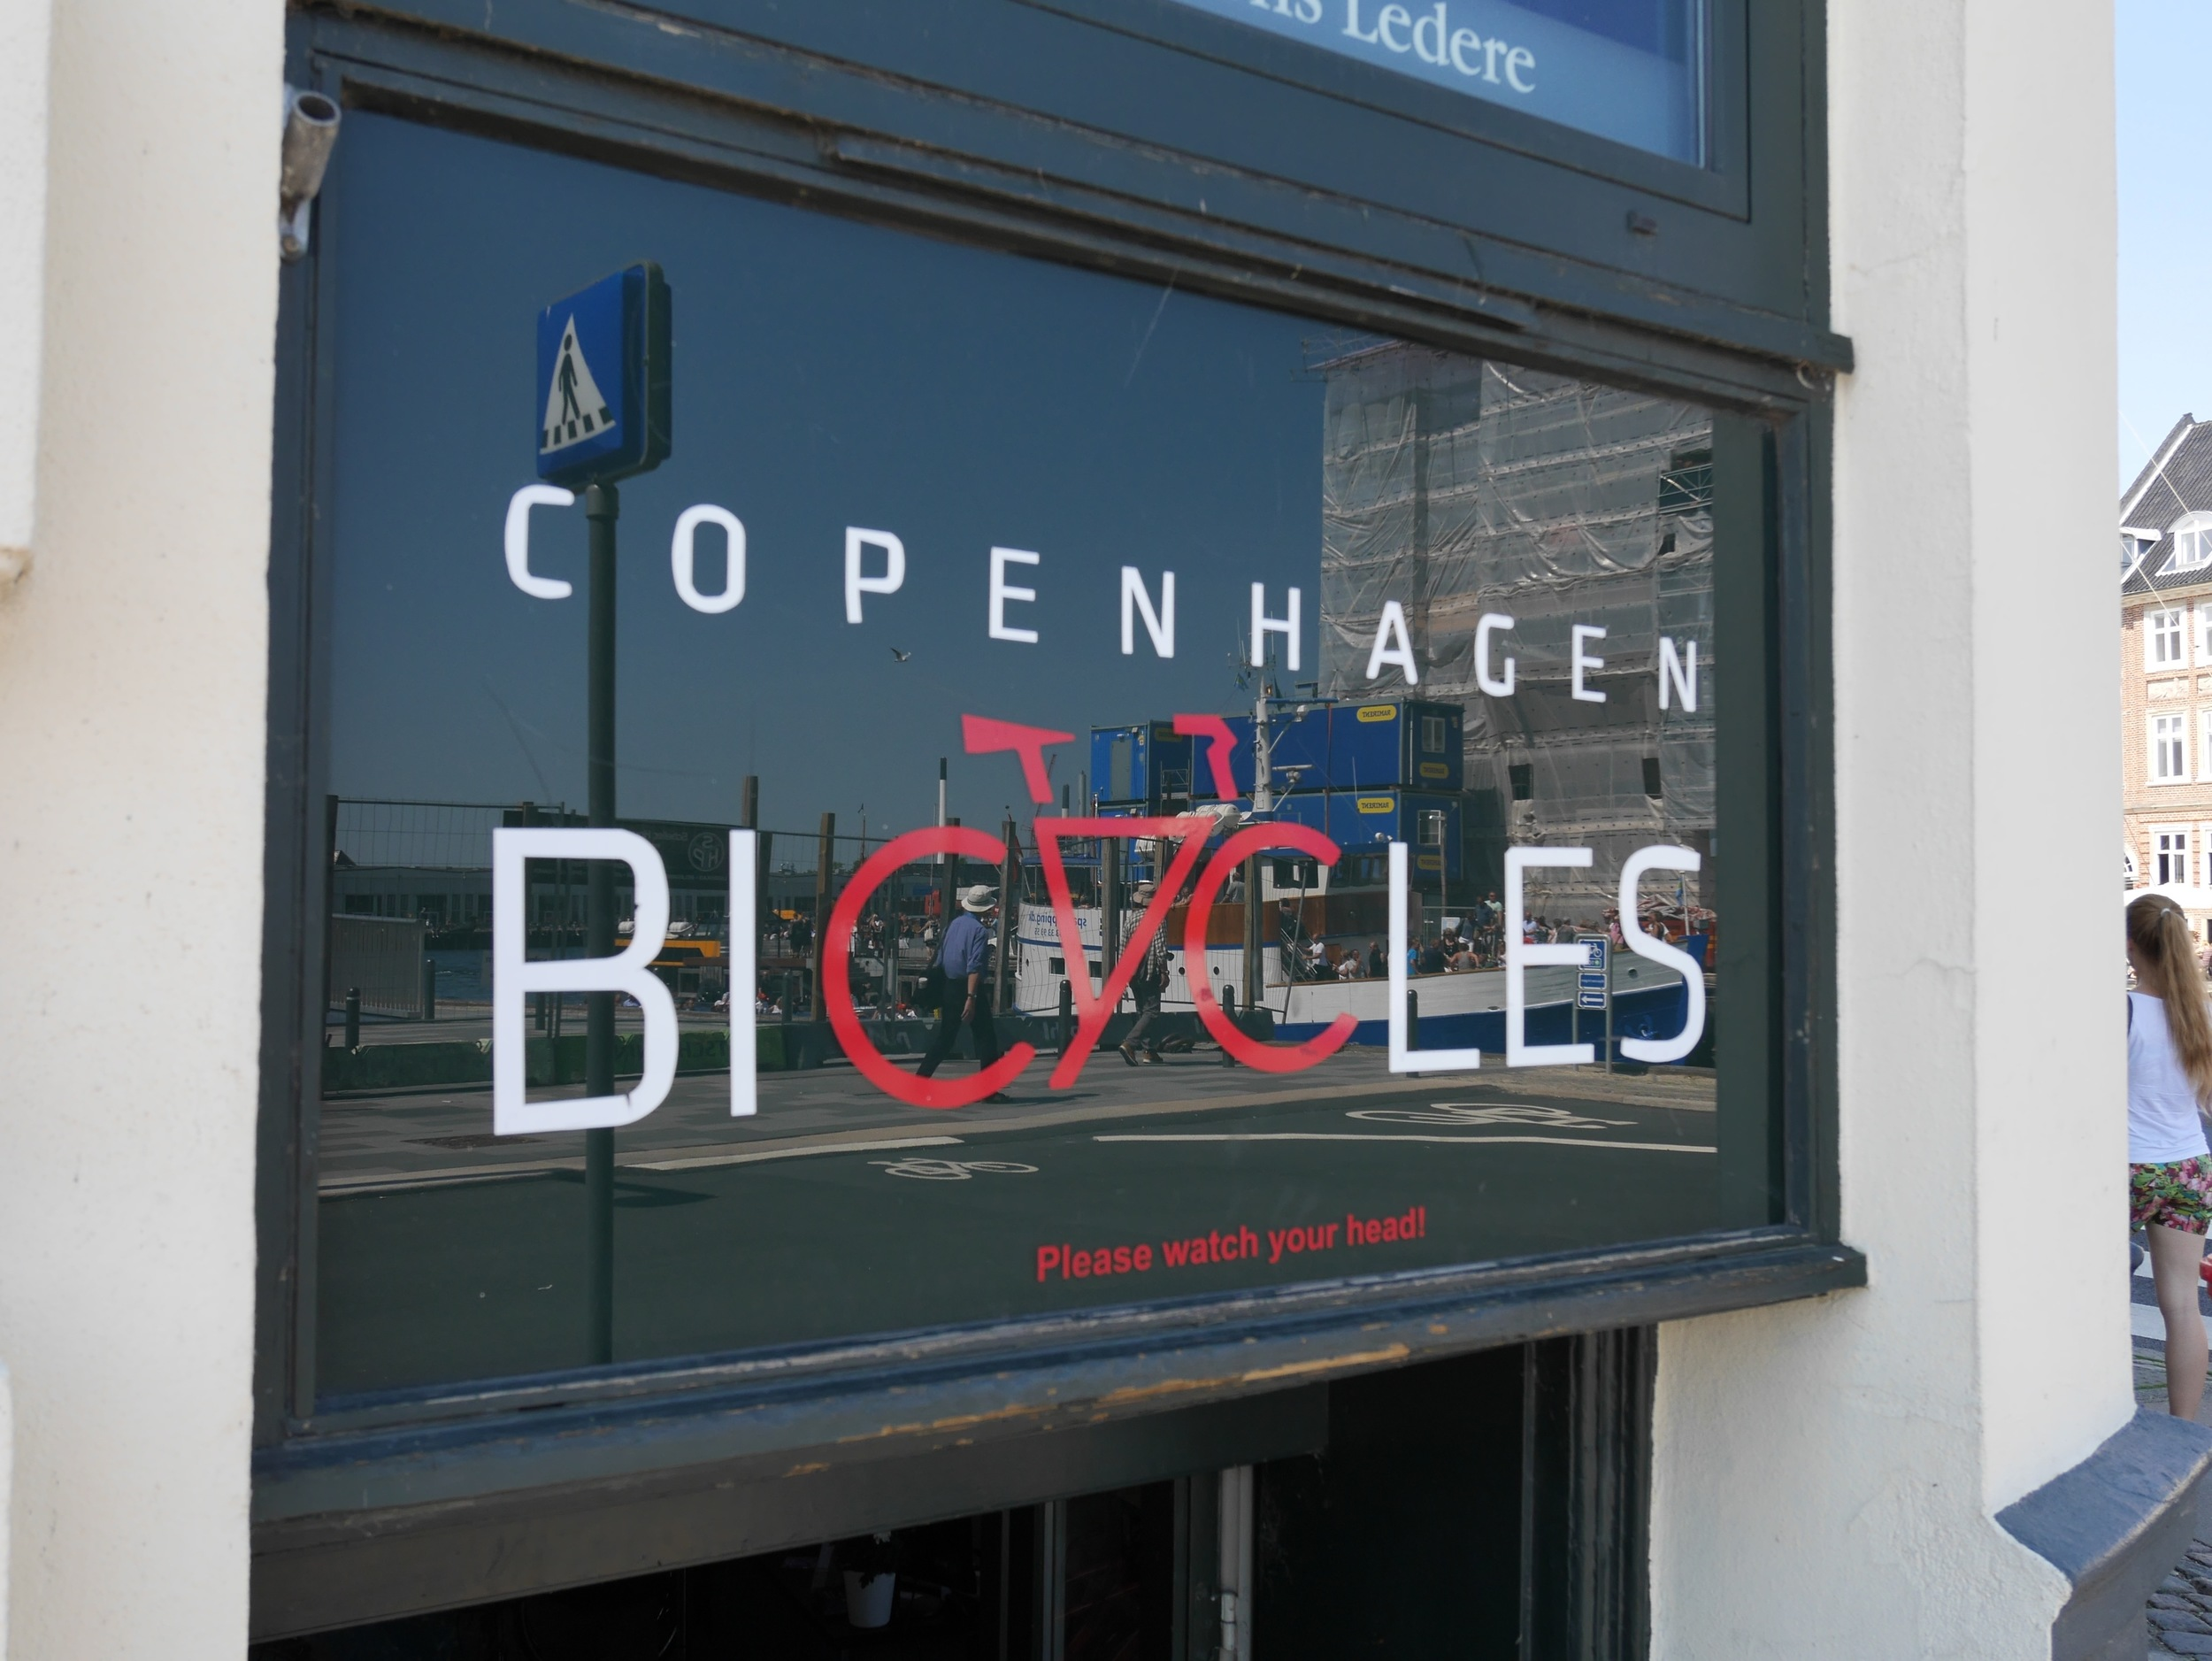 copenhagen bicycle rentals - you can rent bikes everywhere throughout the city